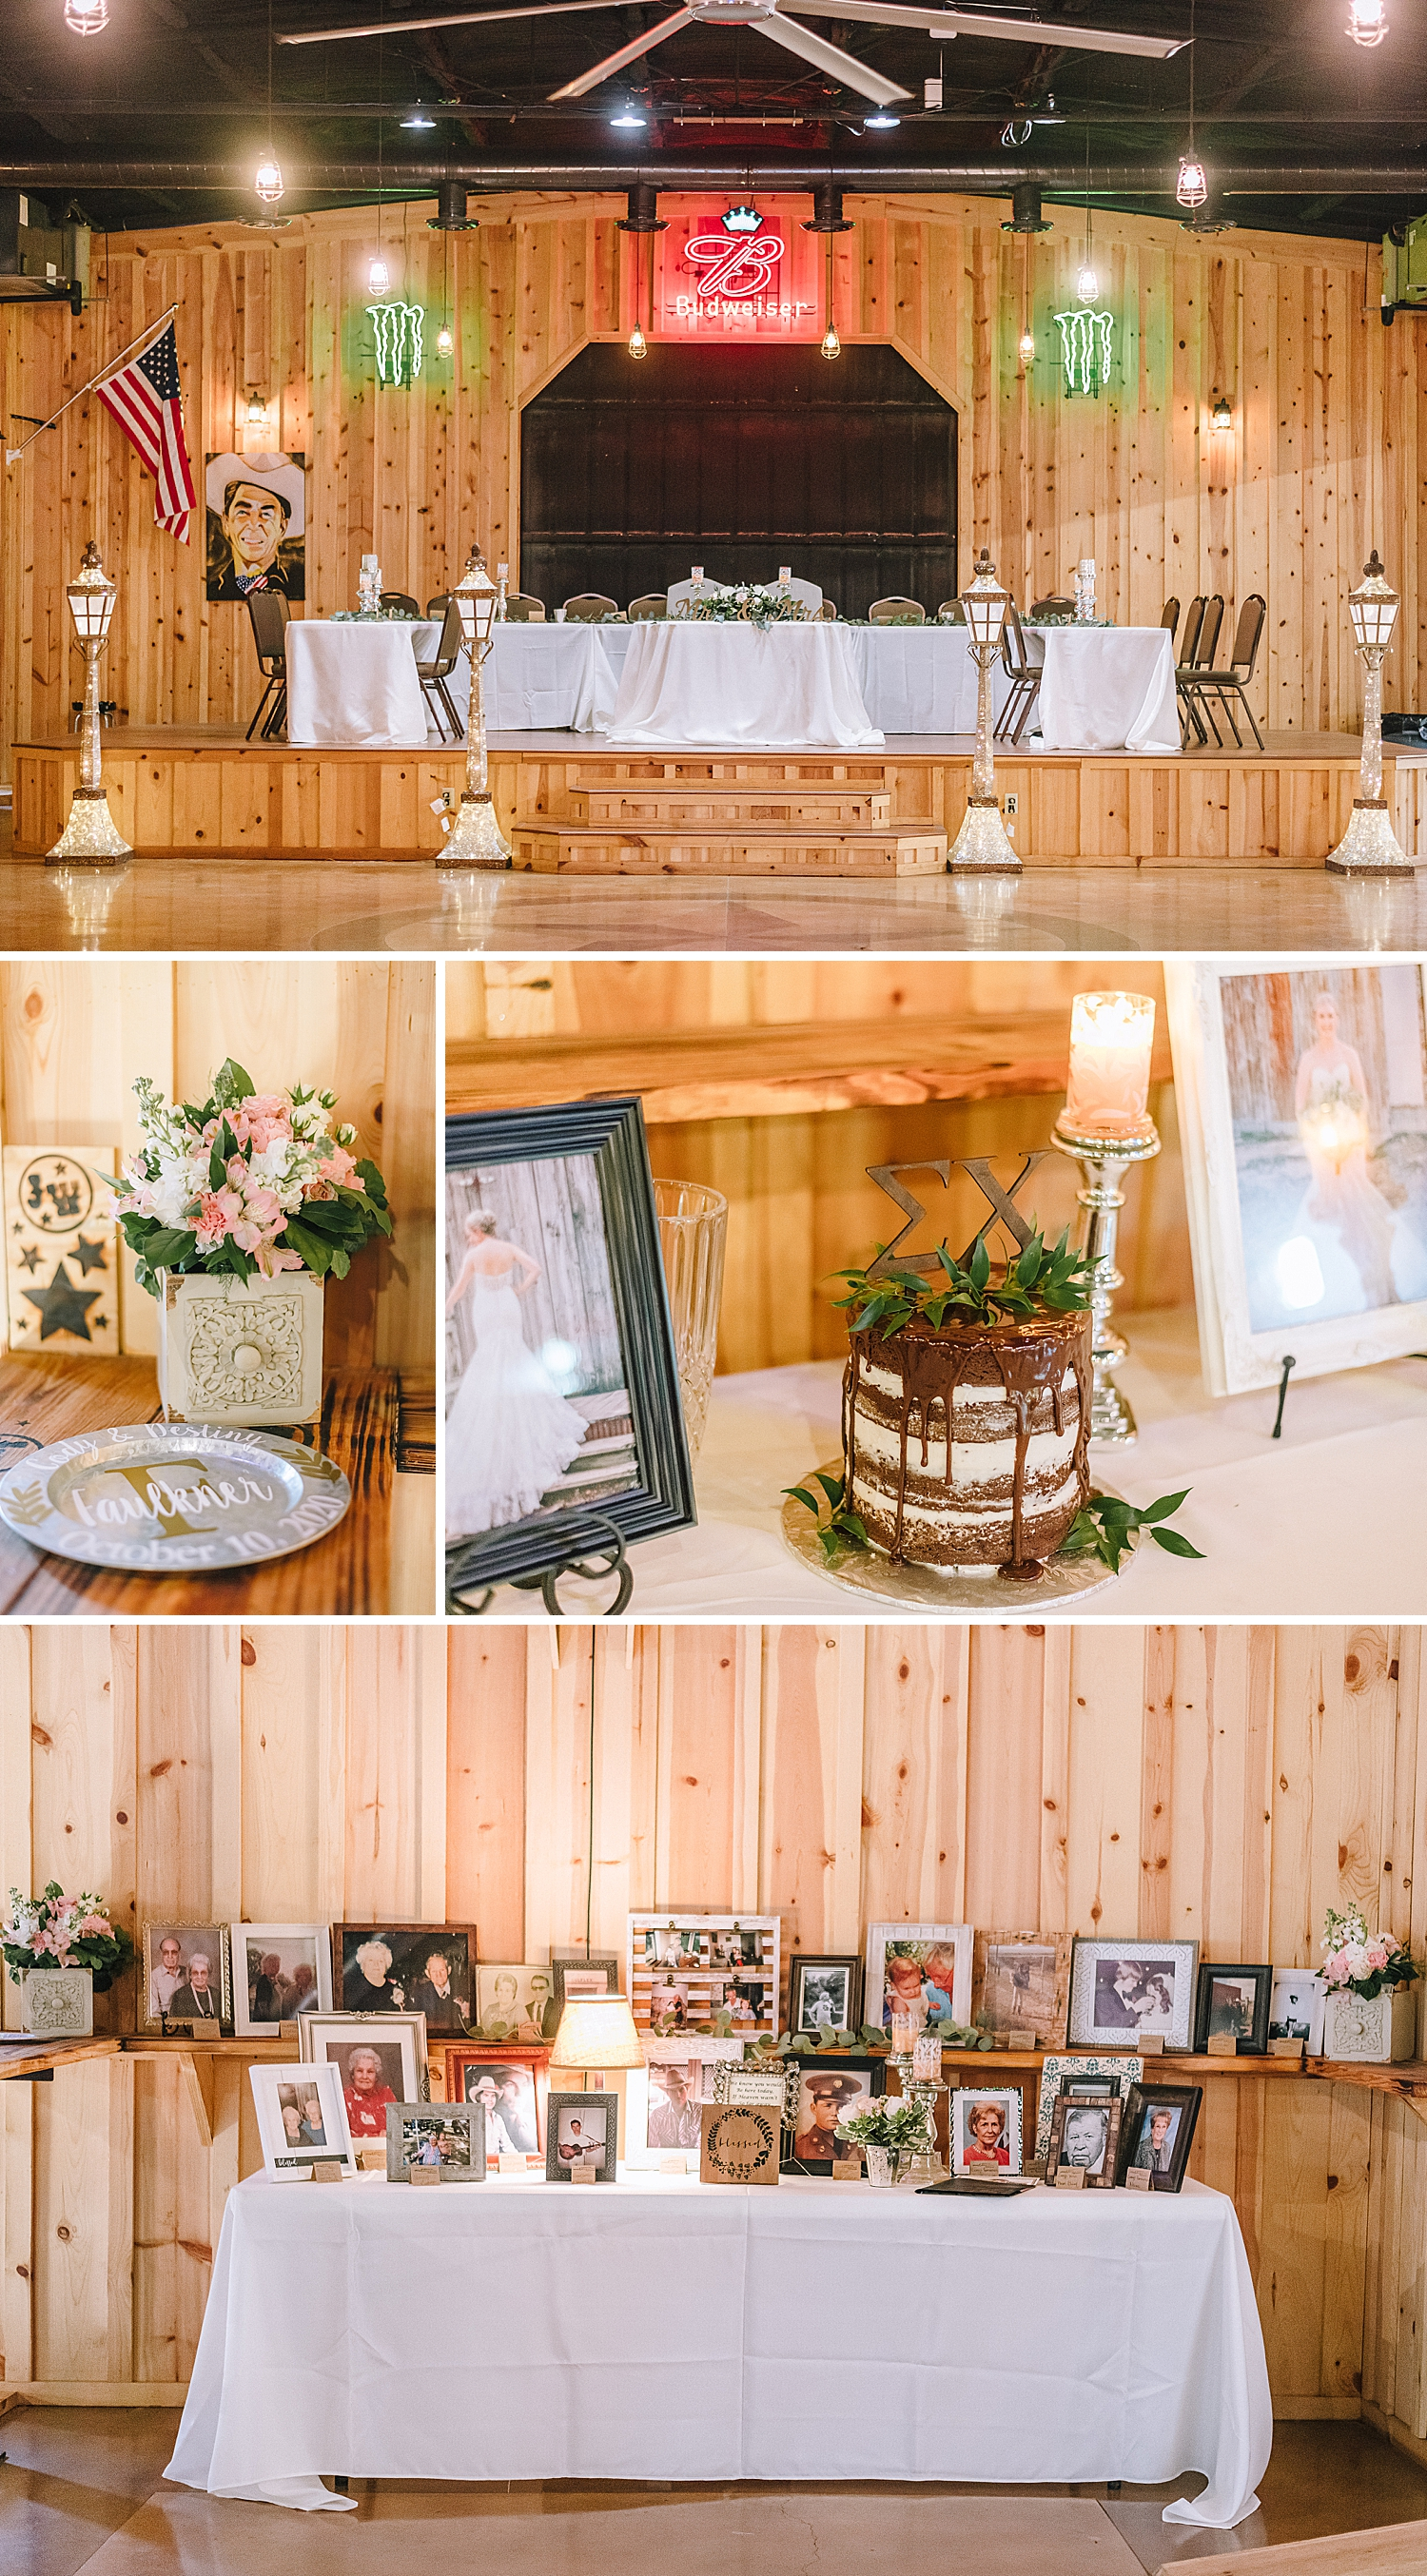 Rackler-Ranch-LaVernia-Texas-Wedding-Carly-Barton-Photography_0006.jpg